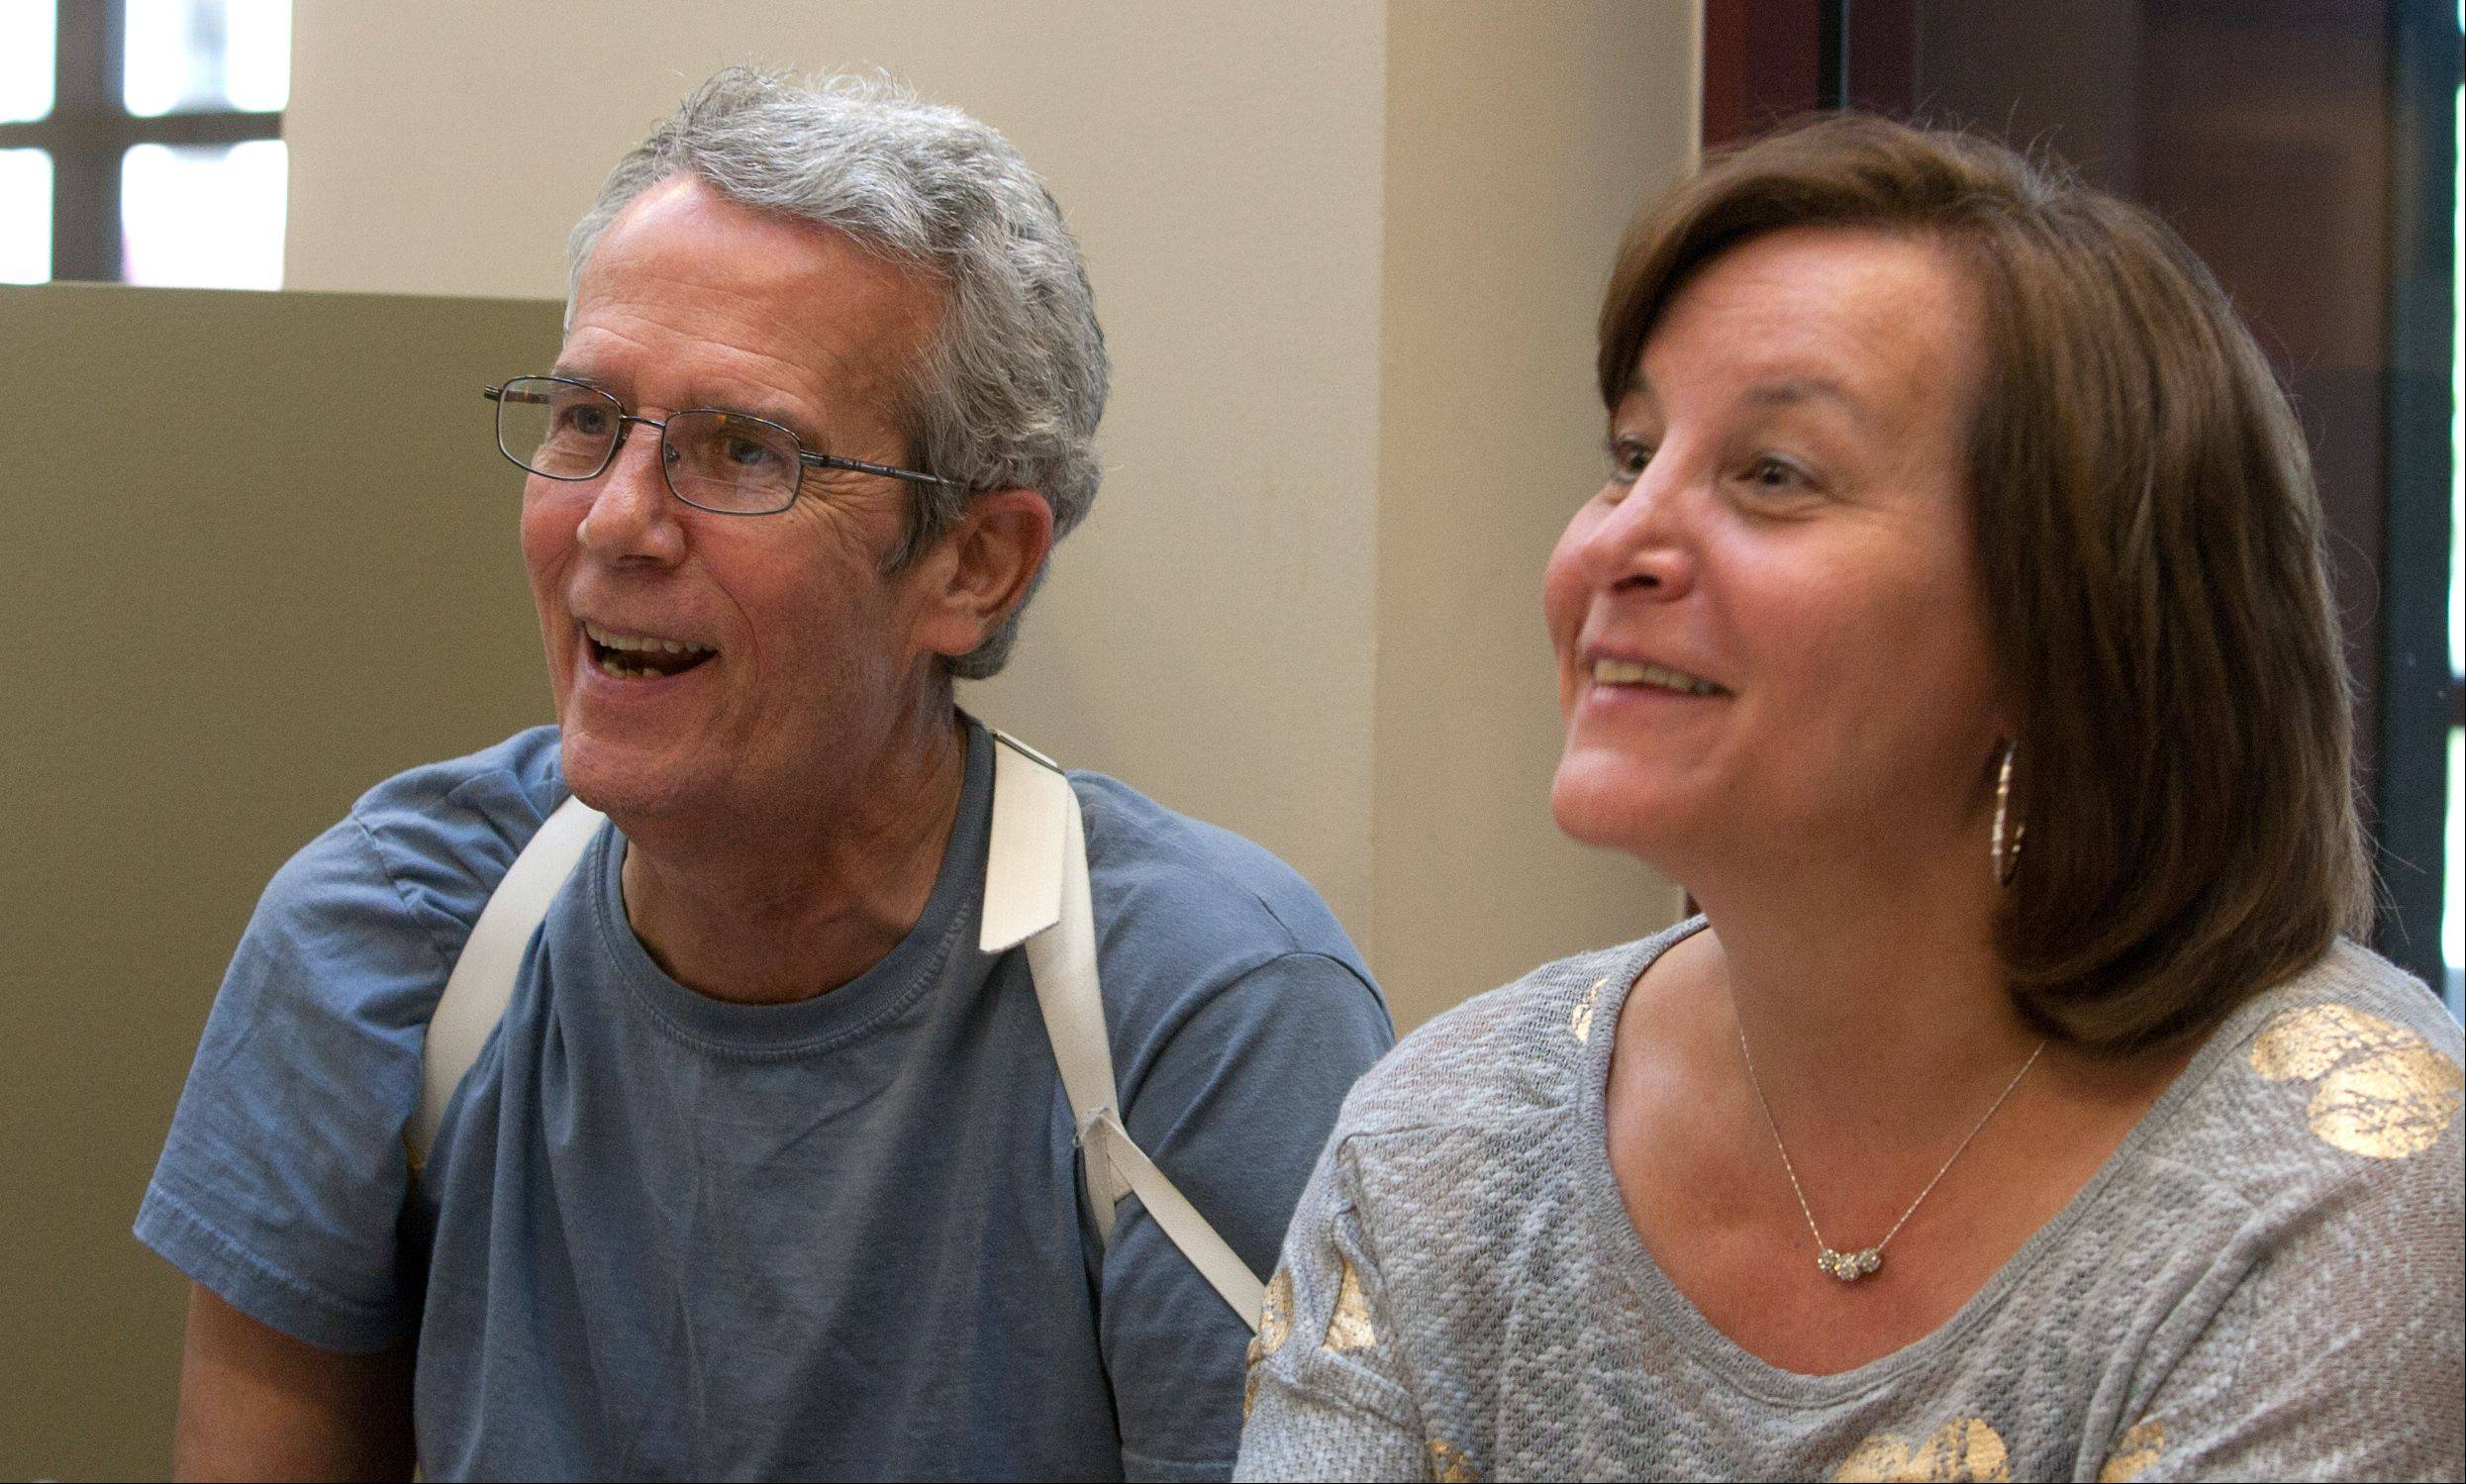 Cheryl Johnstone, right, provided guidance during many trials and tribulations.